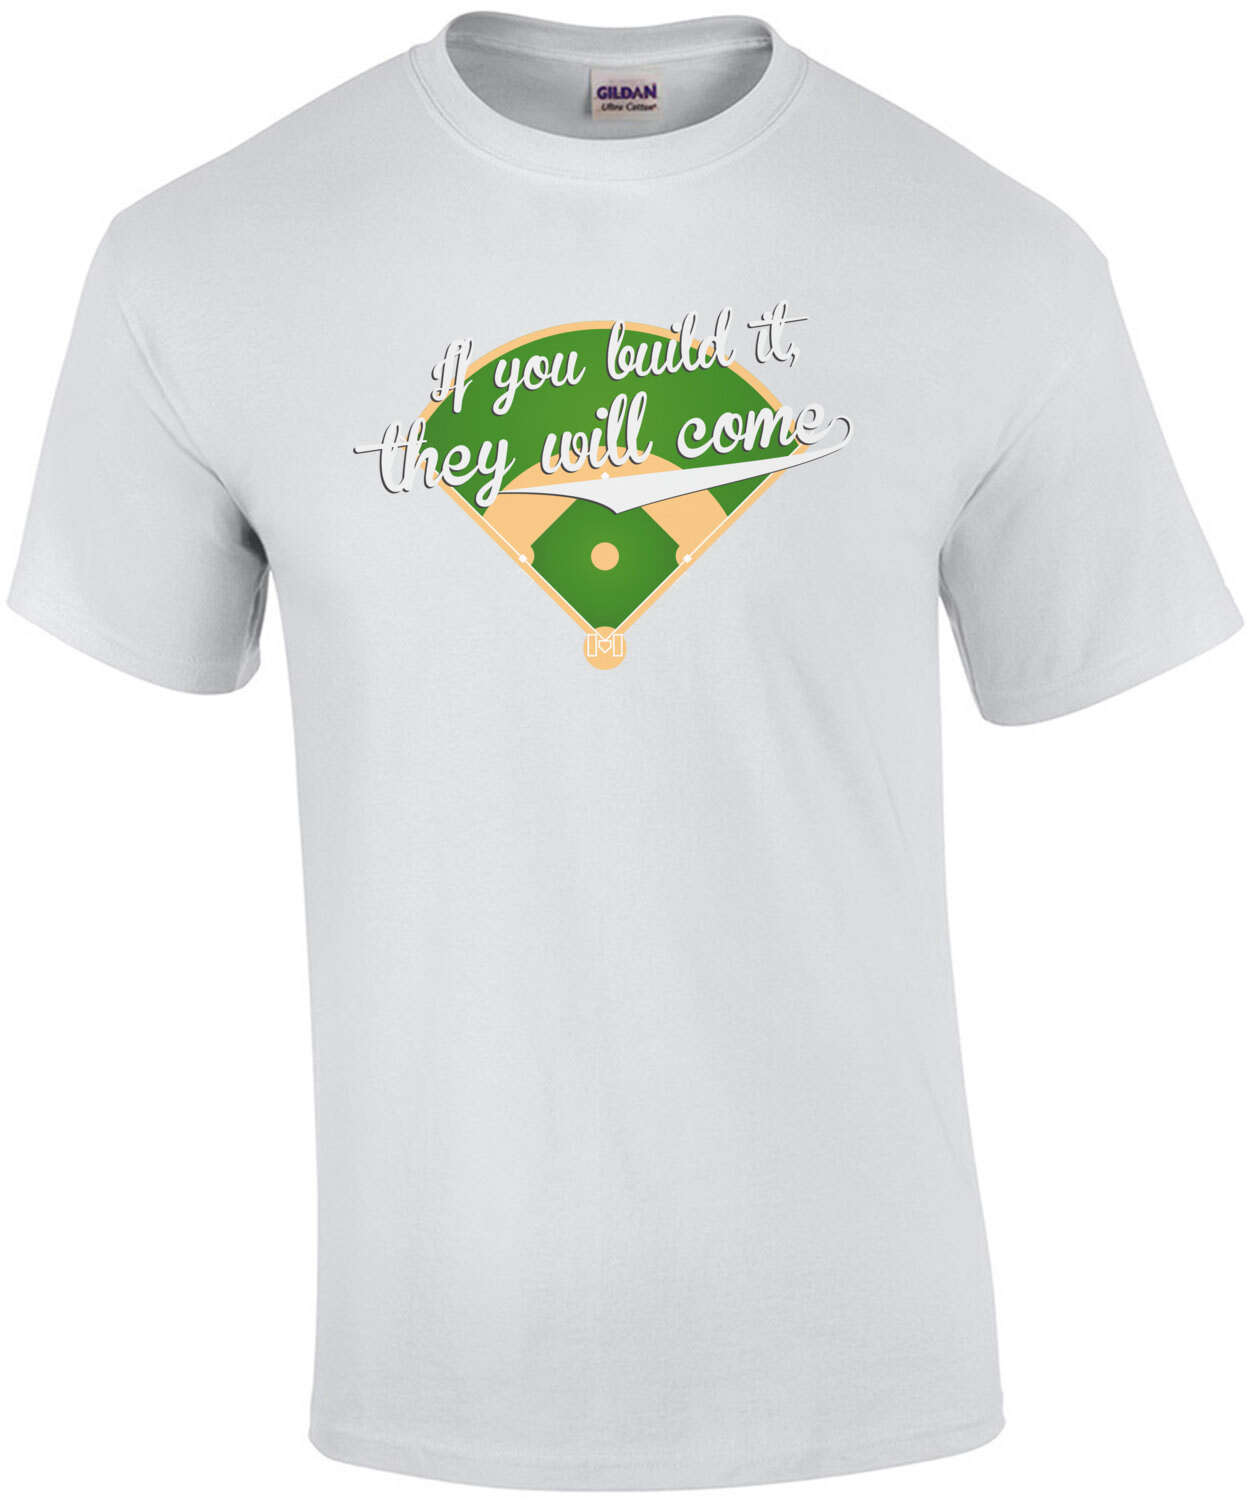 If you build it, they will come - Field of Dreams - 80's T-Shirt